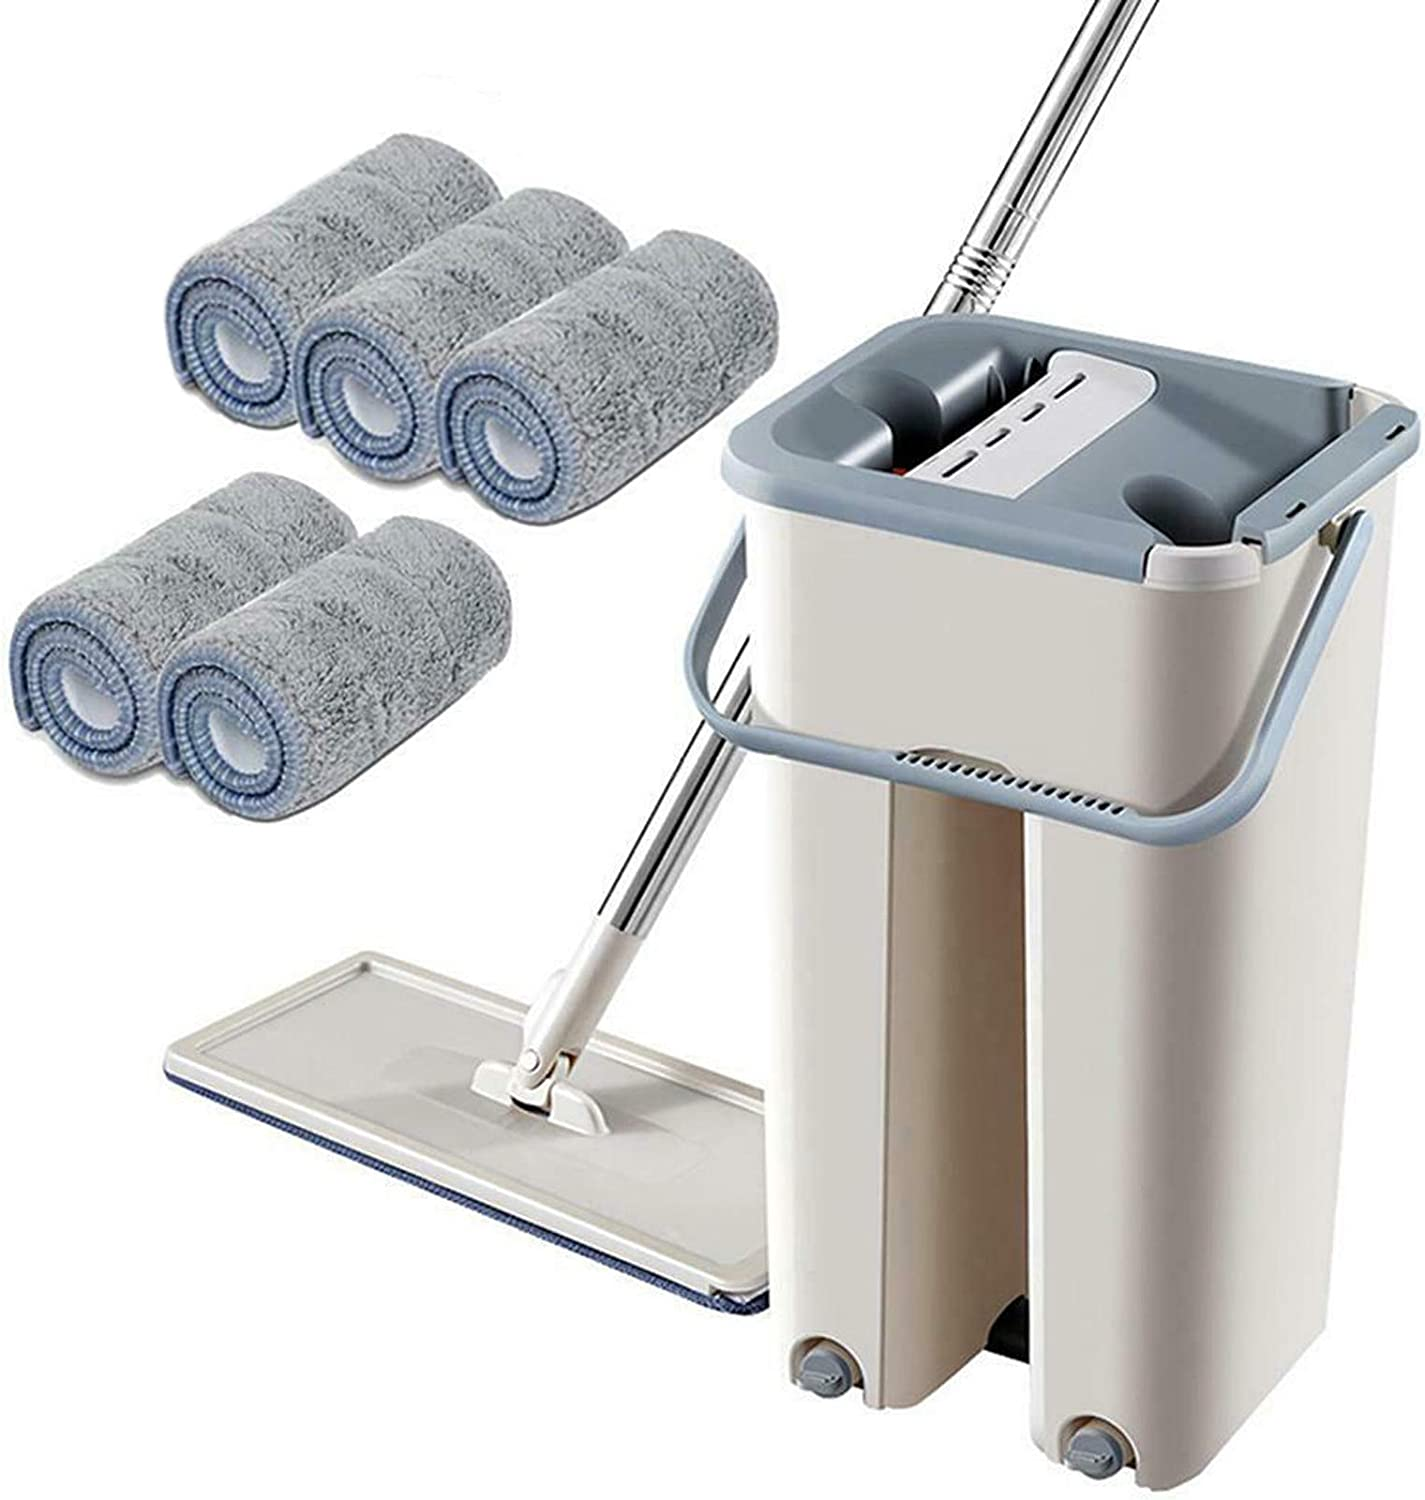 Muliy Flat Mop Free Hand Tampa Mall Wash Lazy Degree Set 360 Cleaning Tool Surprise price